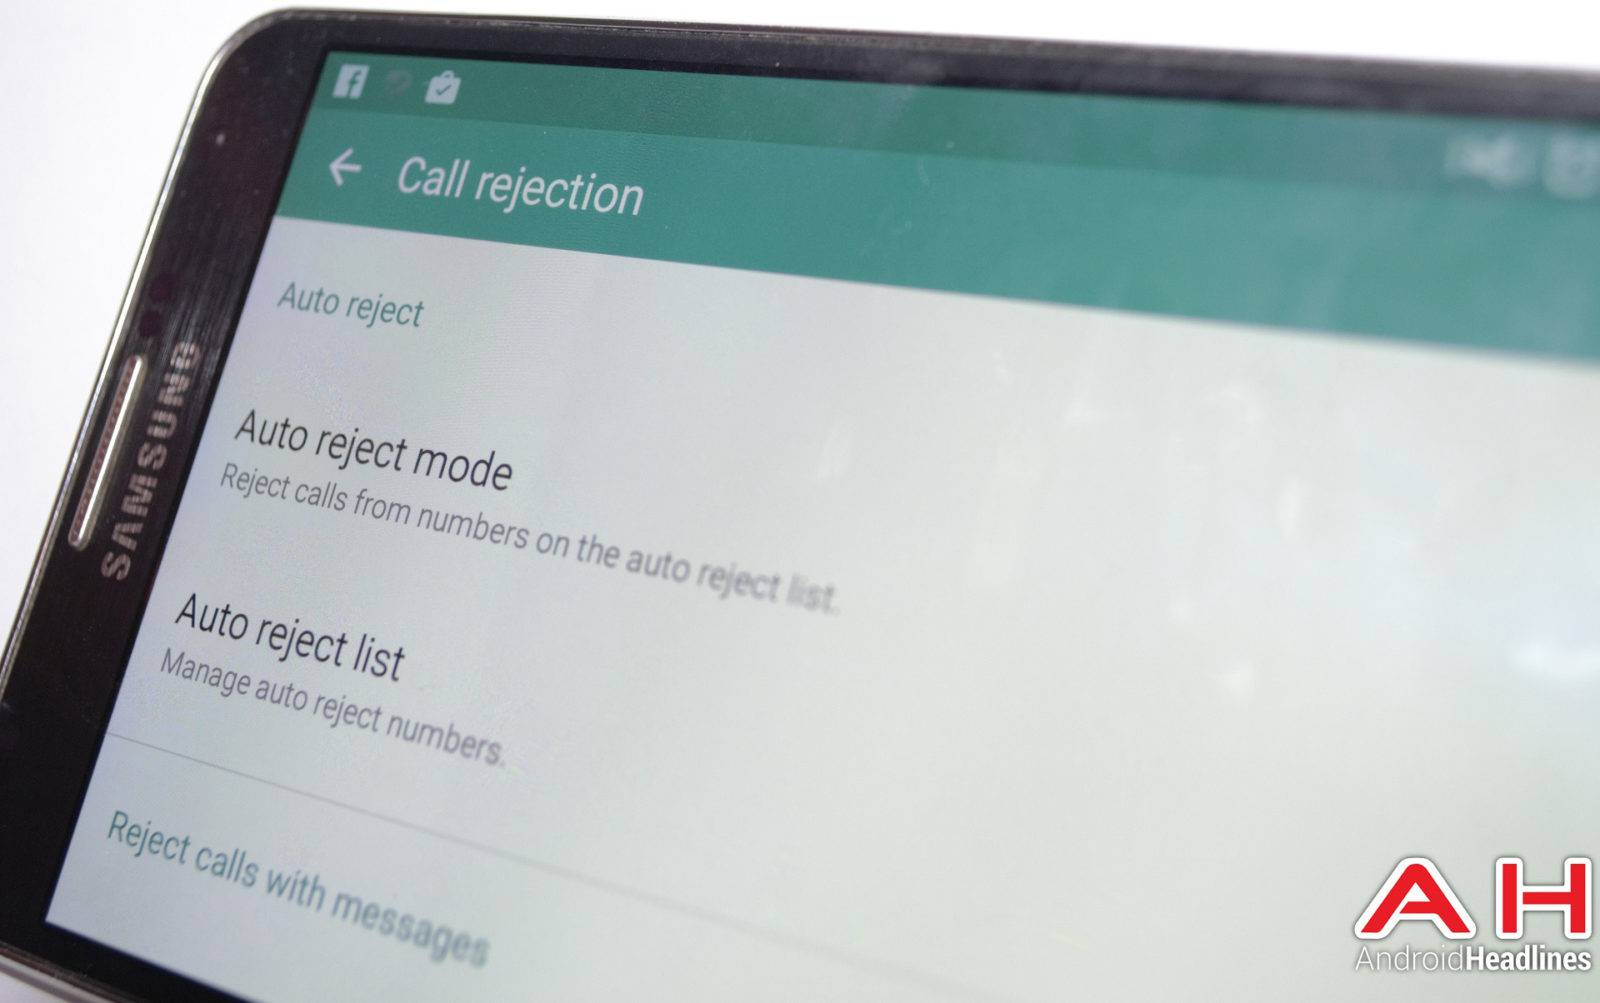 How can you block unwanted callers using an Android device?